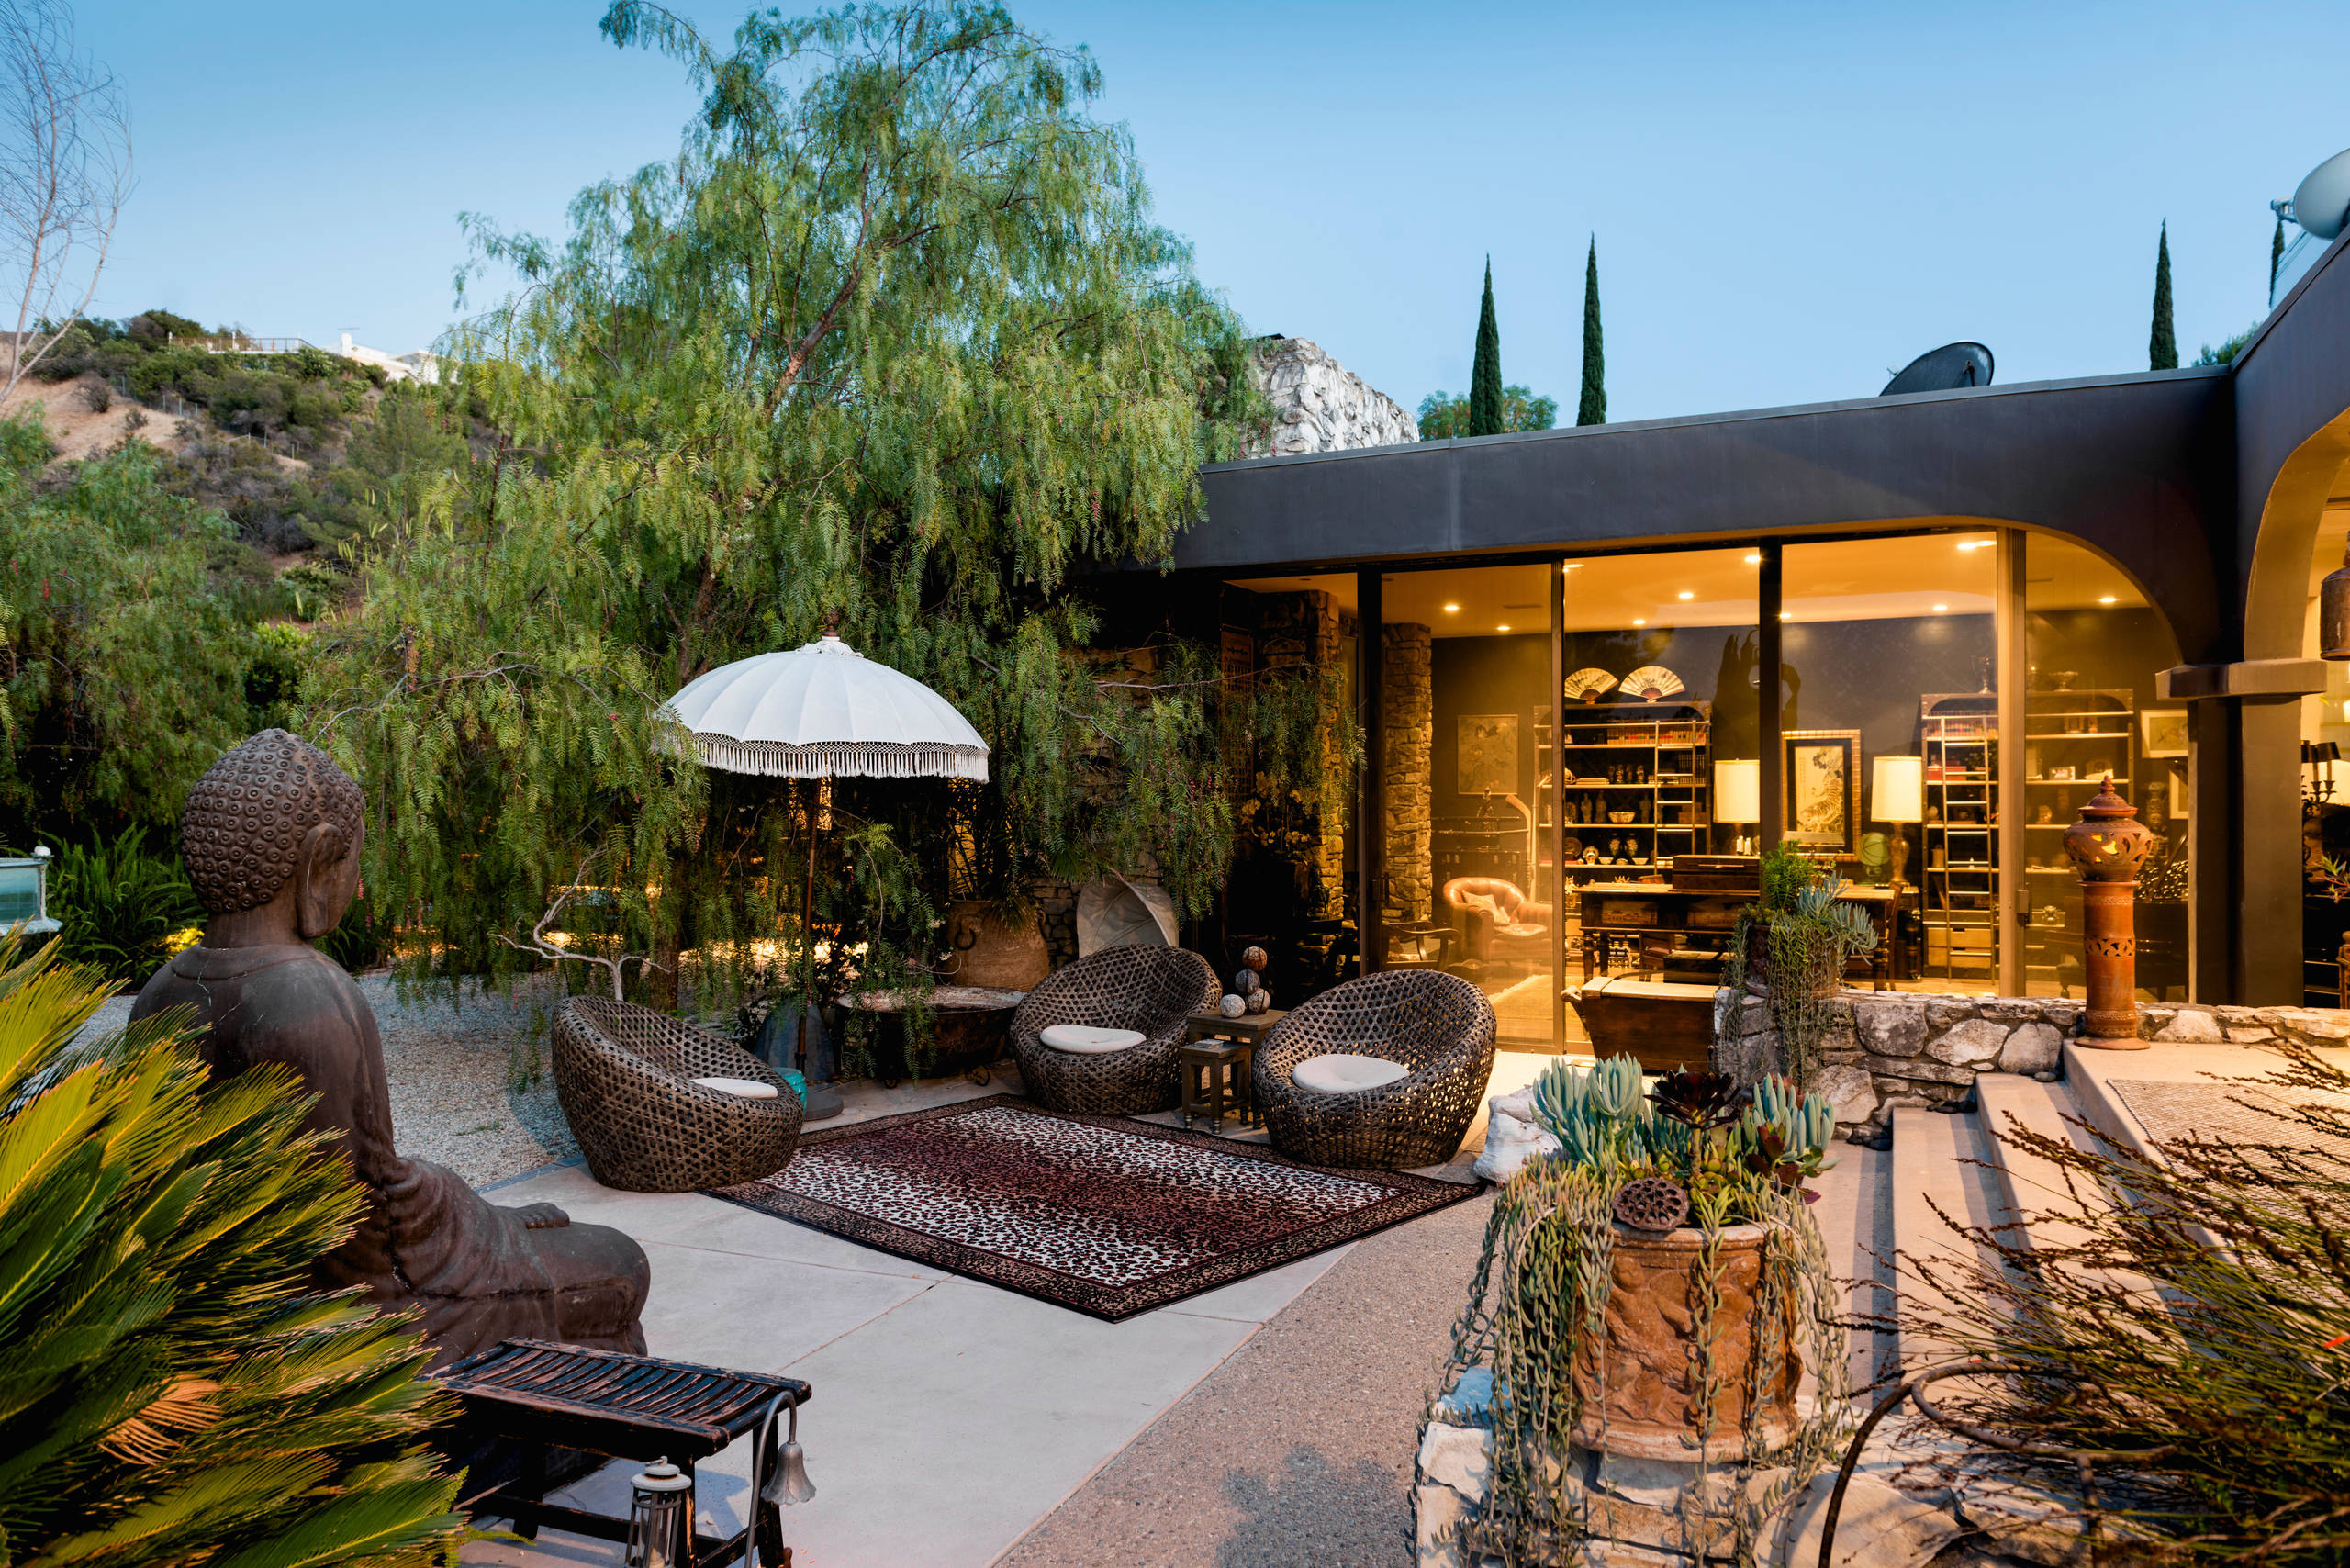 17 sophisticated asian patio designs you 39 ll obsess over - Garden patio ideas pictures ...